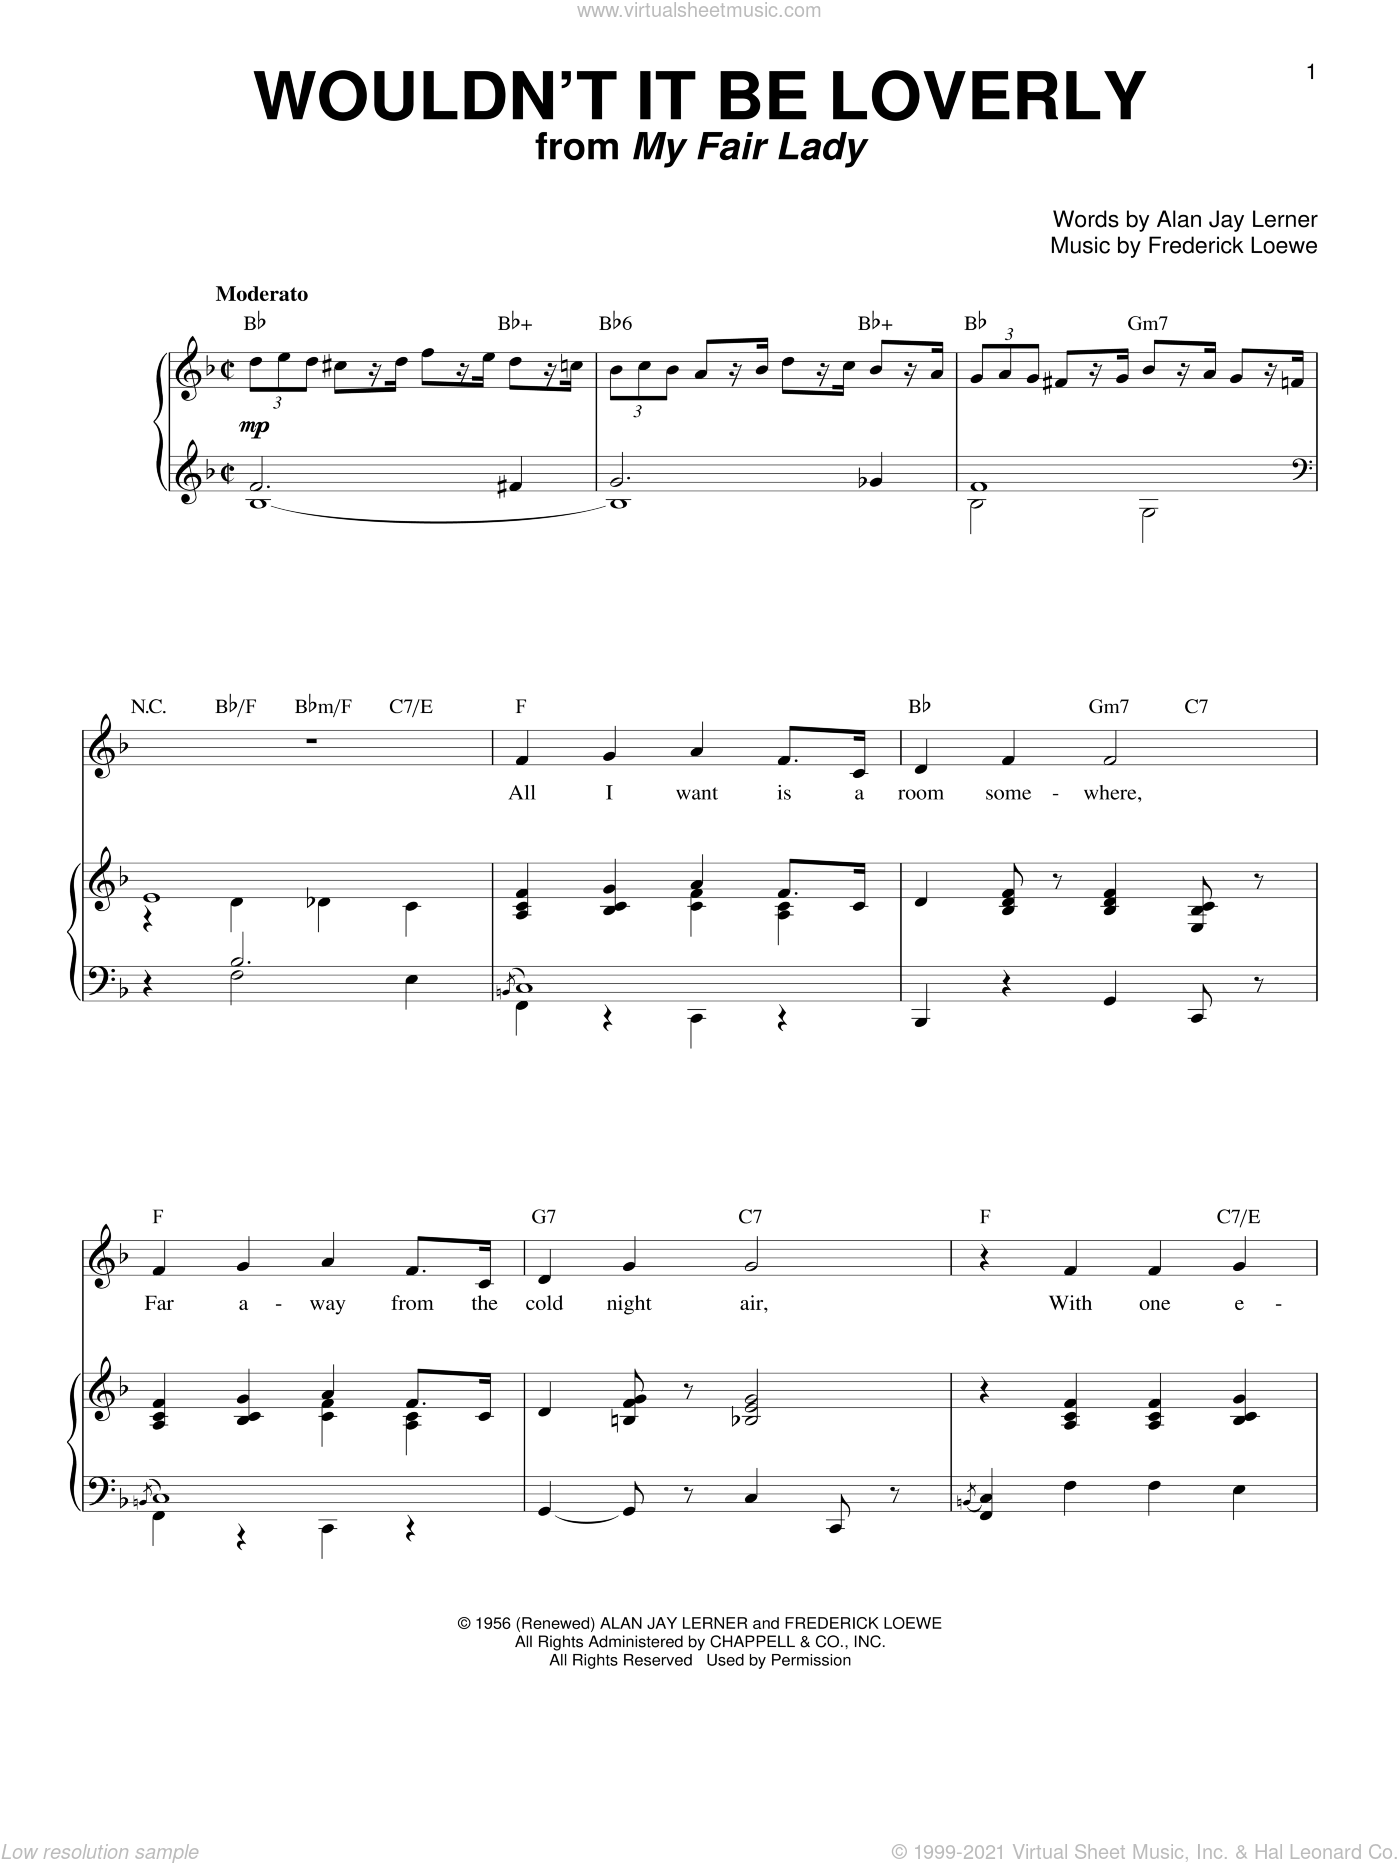 Wouldn't It Be Loverly sheet music for voice and piano by Lerner & Loewe, My Fair Lady (Musical), Alan Jay Lerner and Frederick Loewe, intermediate skill level